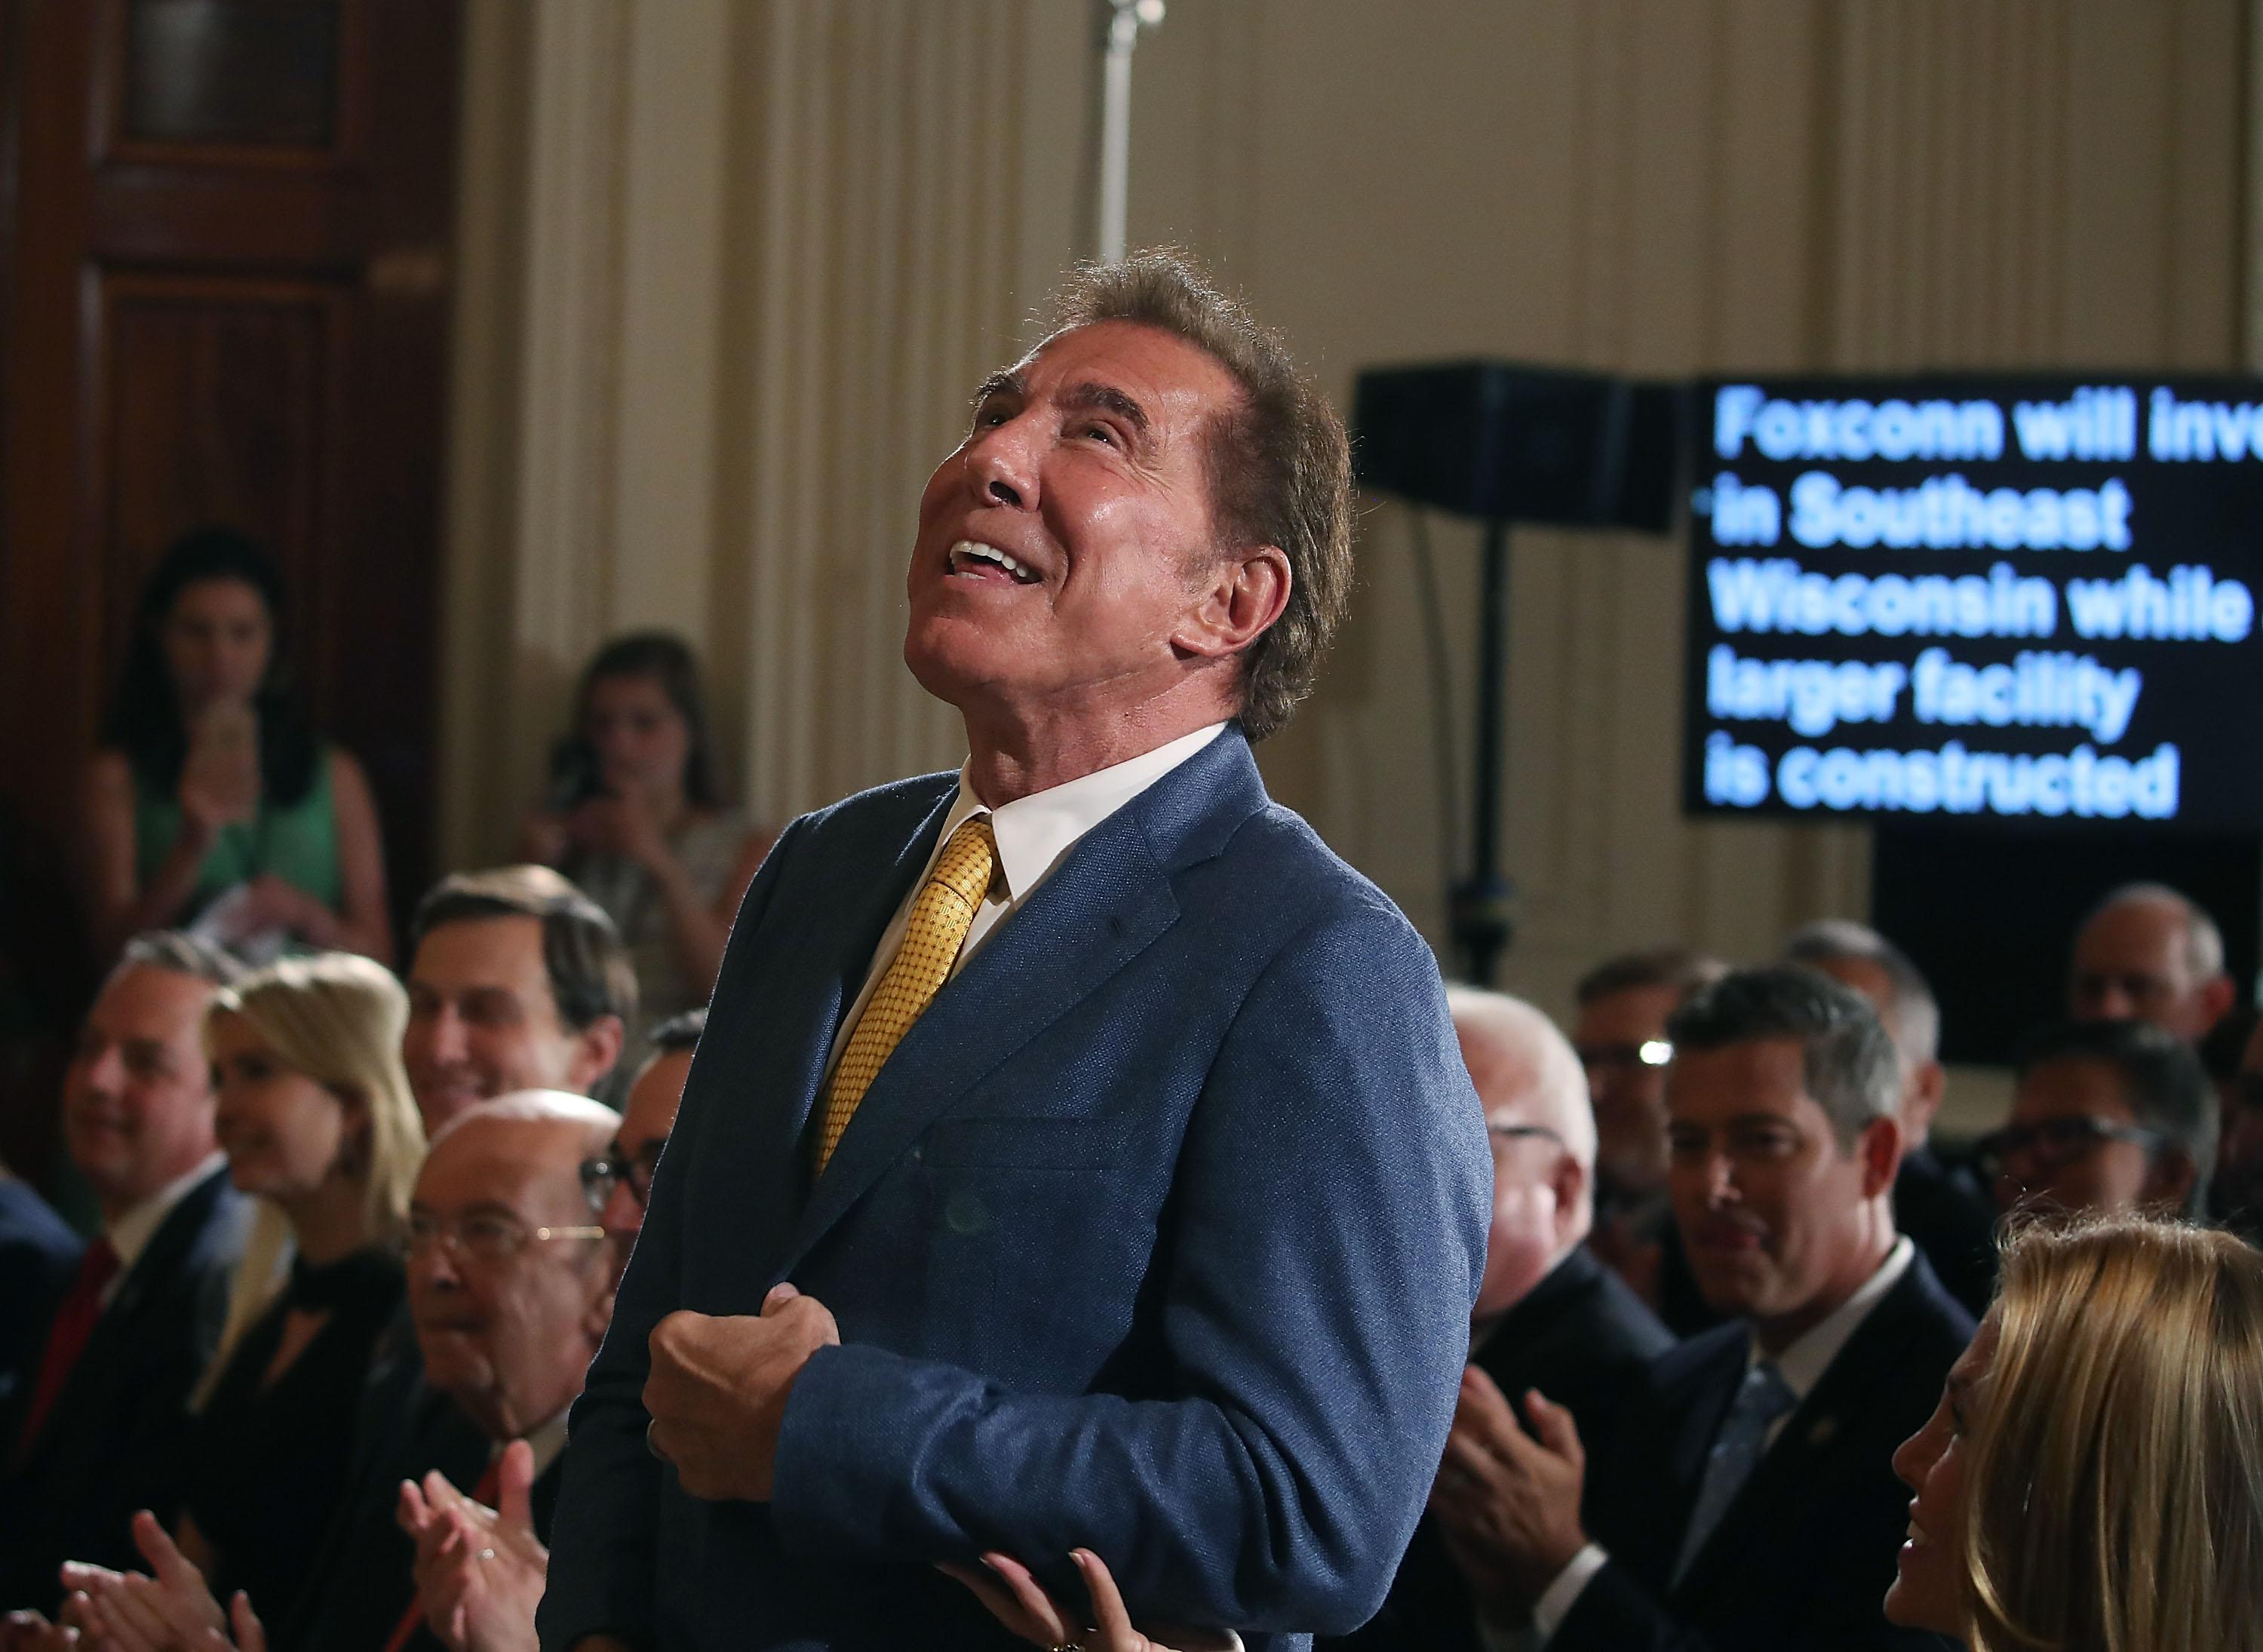 Steve Wynn, CEO of Wynn Resorts, is acknowledged at a news conference held by U.S. President Donald Trump in the East Room of the White House July 26, 2017 in Washington, DC. The president was touting a decision by Apple supplier Foxconn to invest $10 billion to build a factory in Wisconsin that produces LCD panels. Foxconn said the project would create 3,000 jobs, with the 'potential' to generate 13,000 new jobs, according to published reports.